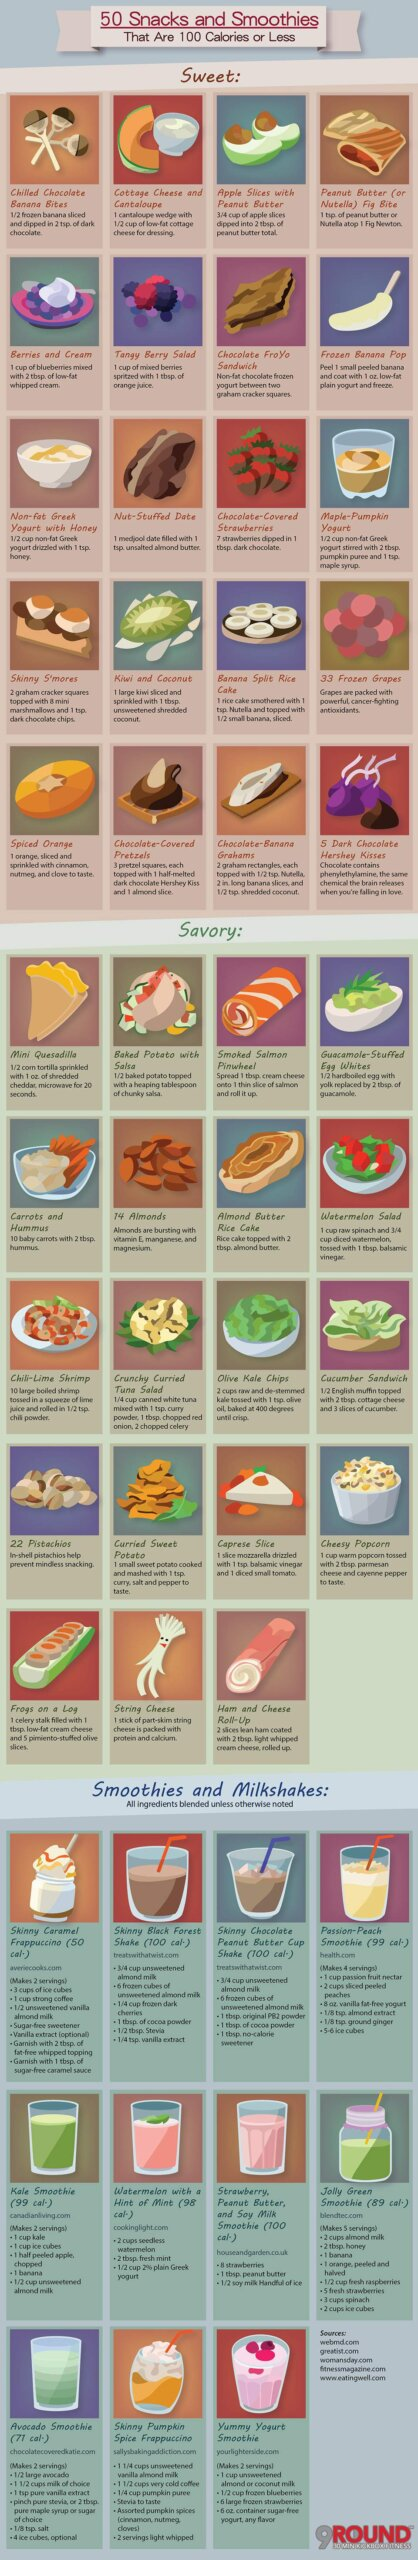 50-Healthy-Snacks